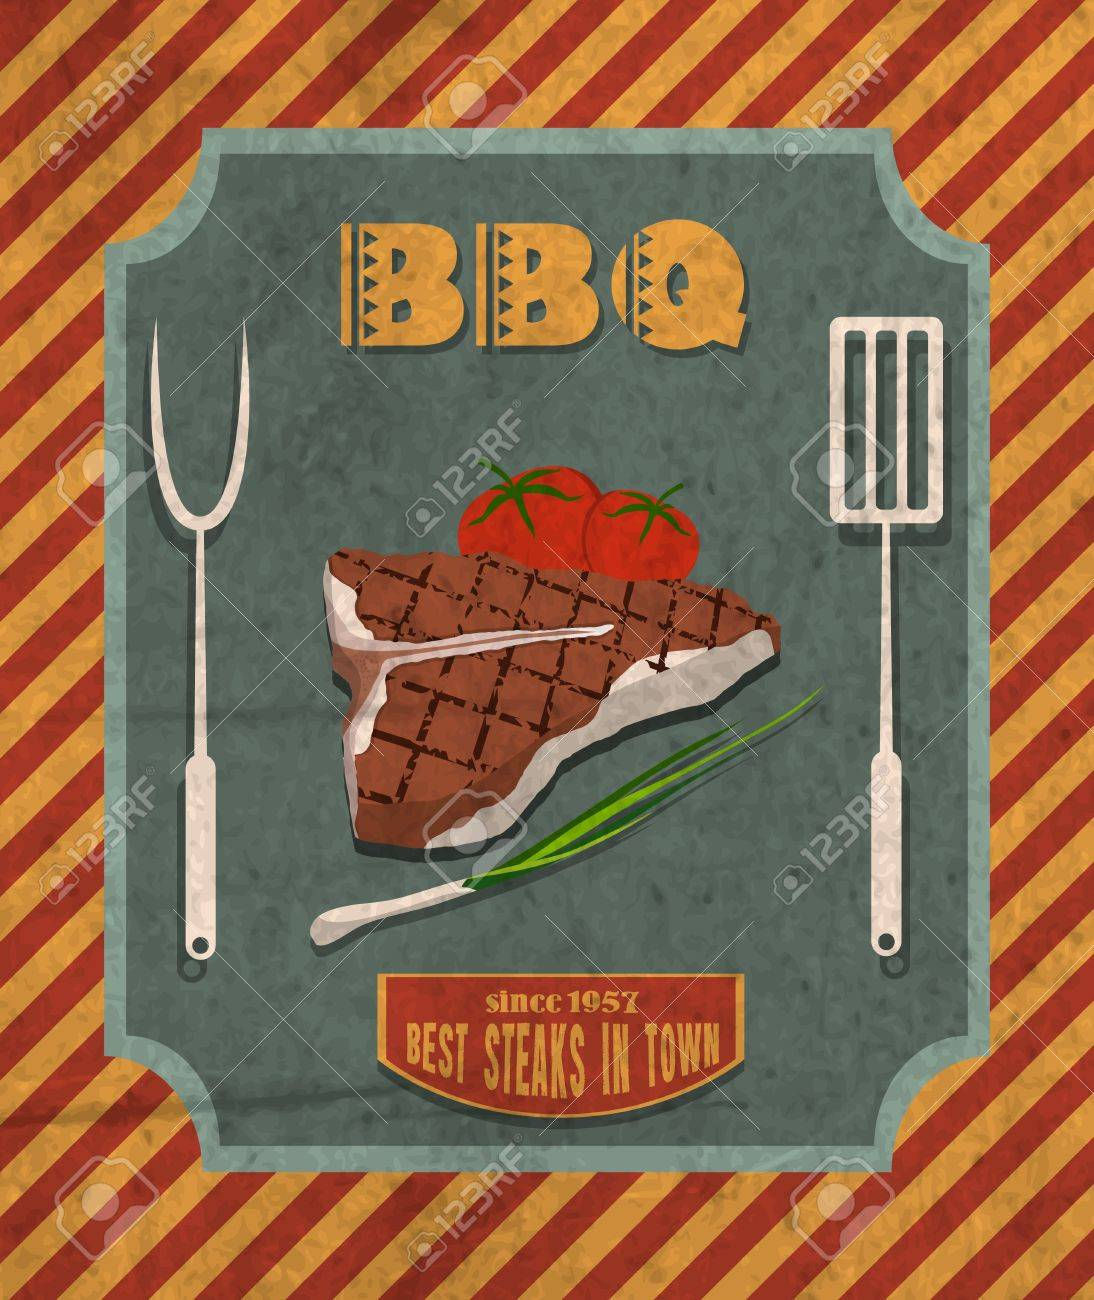 Barbecue Retro Vintage Grill Restaurant Poster With Meat Steak Royalty Free Cliparts Vectors And Stock Illustration Image 27942255